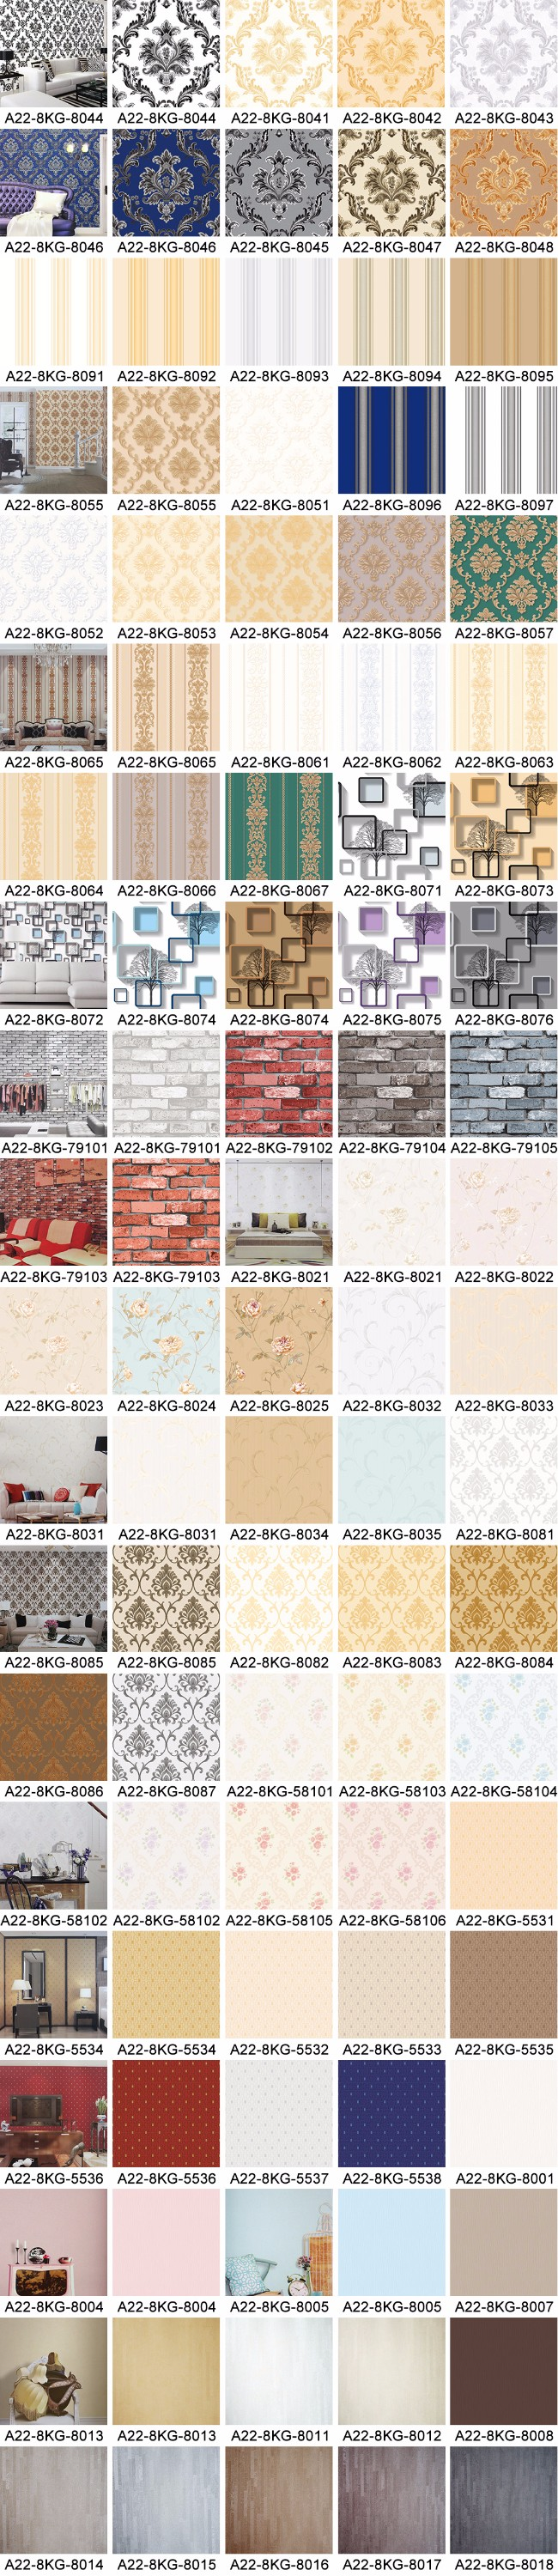 brick wall paper decorative cork wallpaper for house